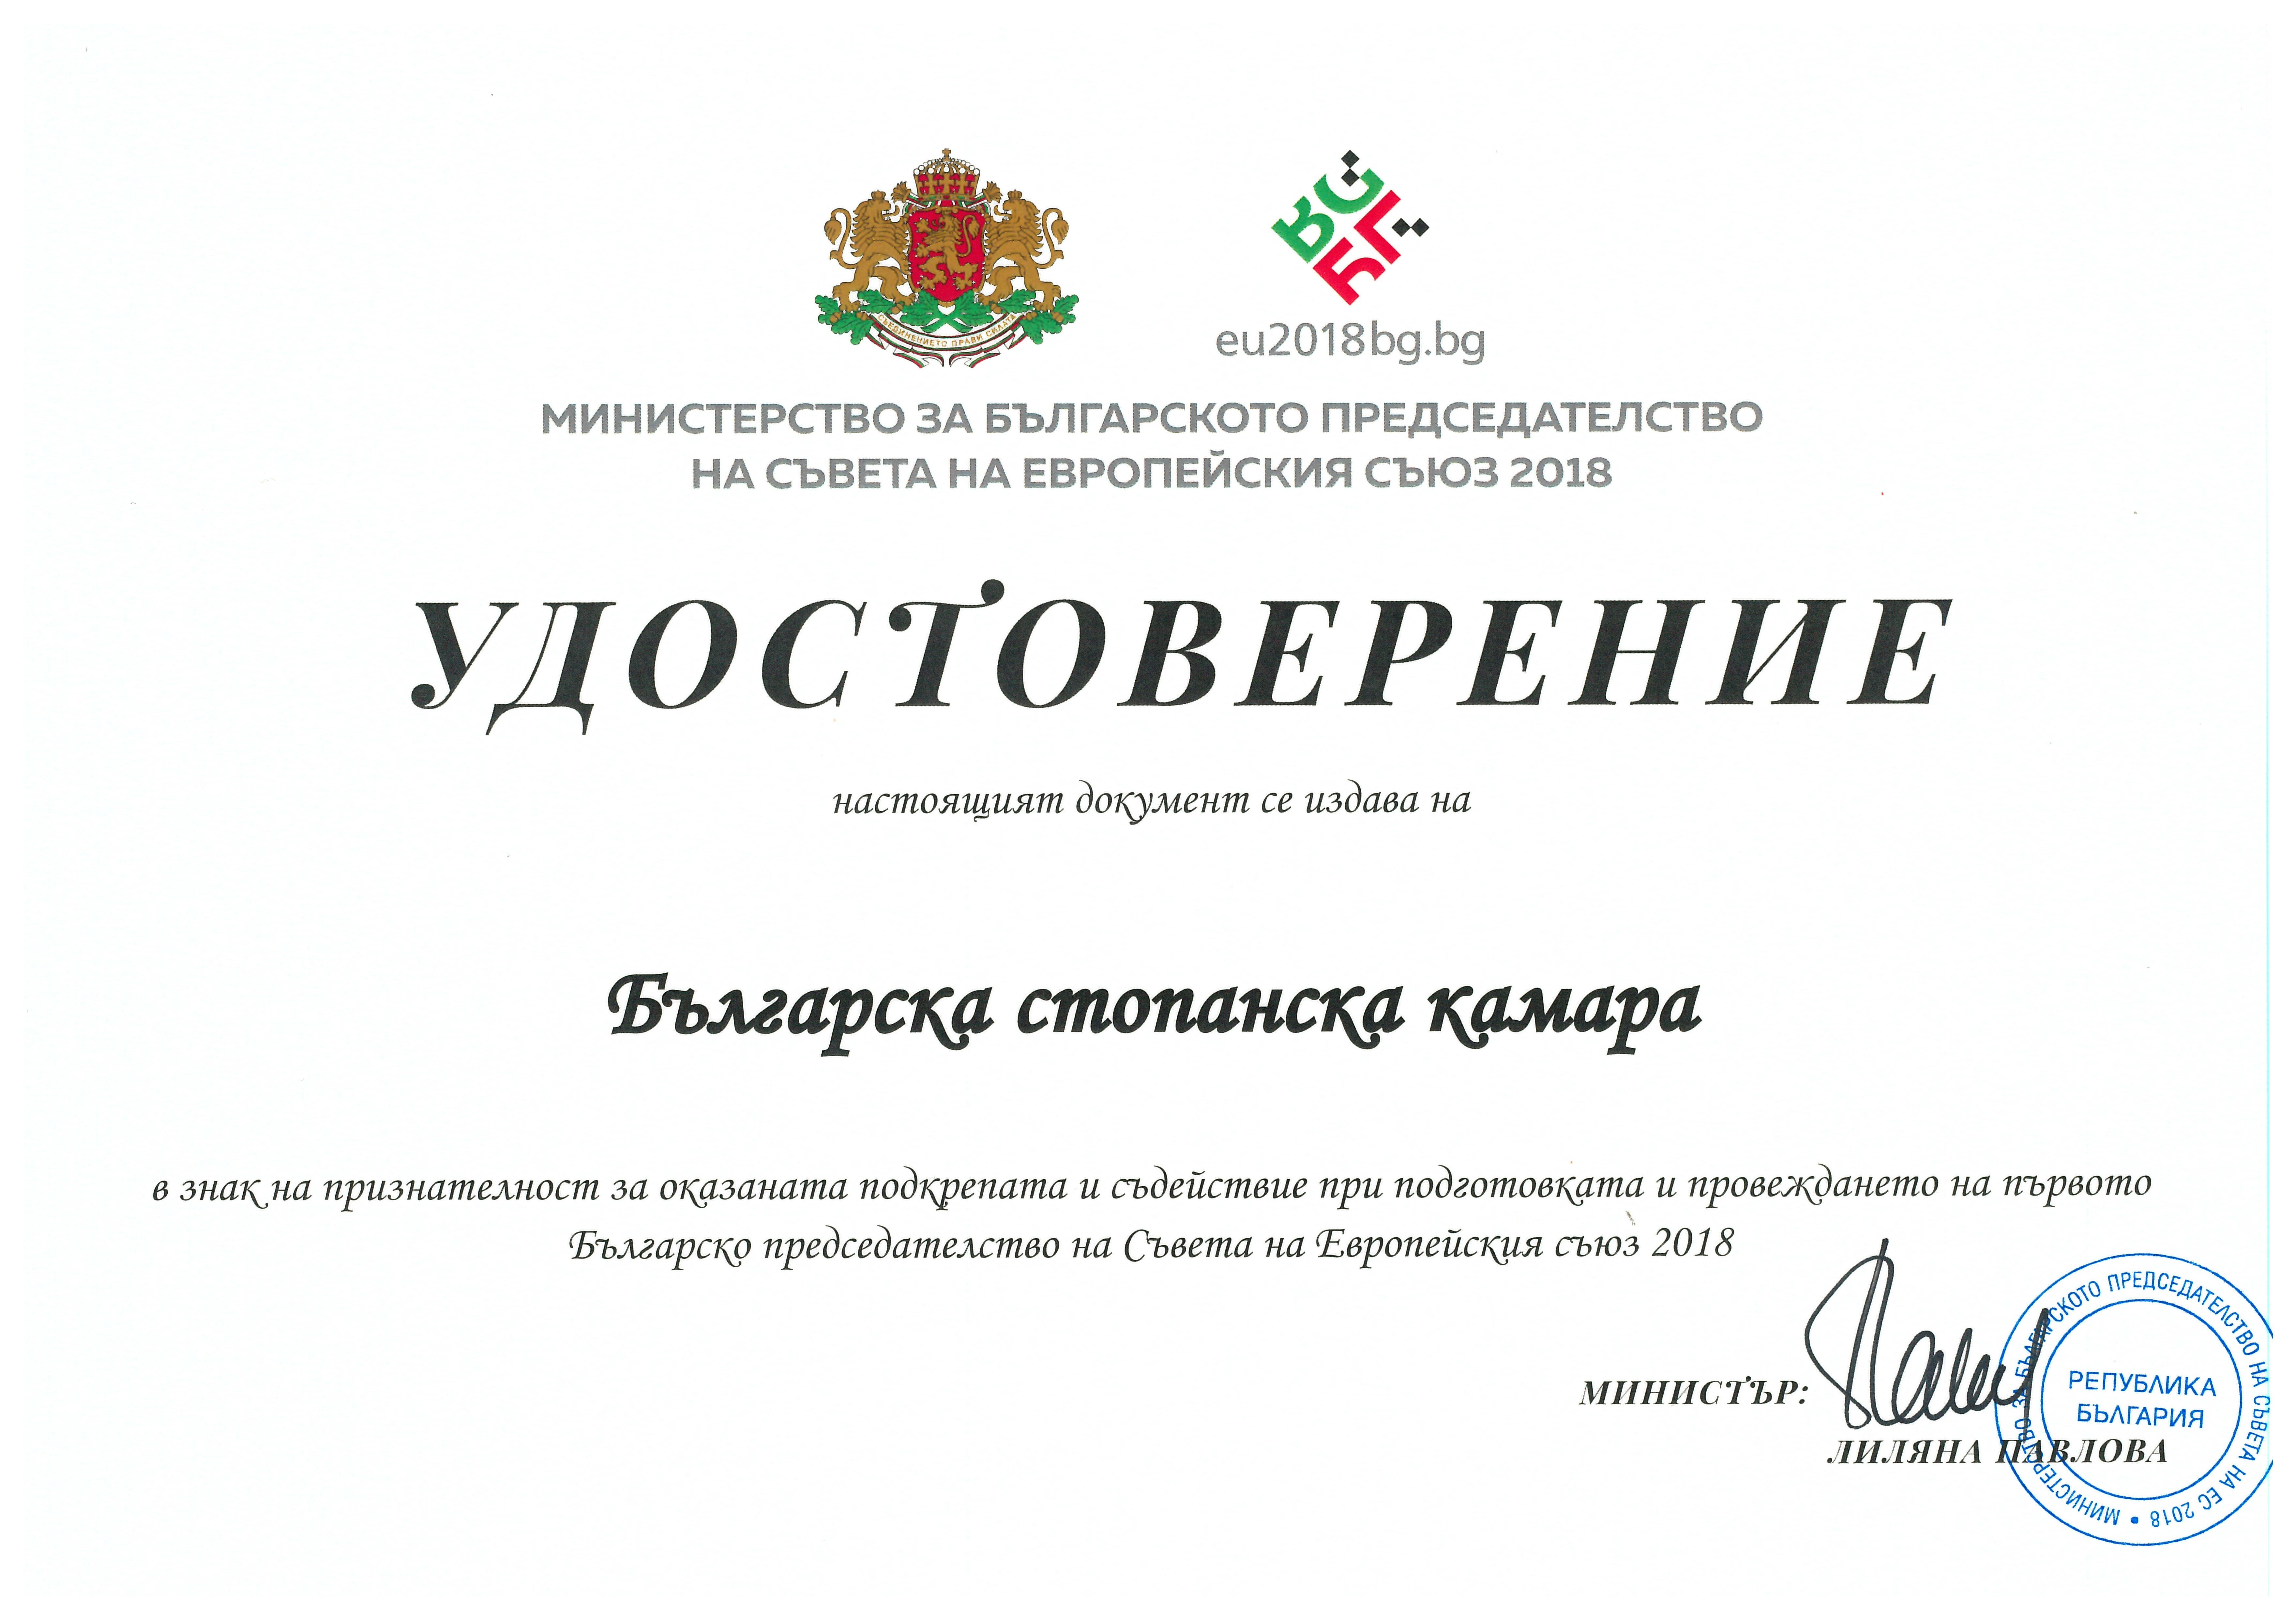 BIA has successfully accomplished its program during the Bulgarian Presidency